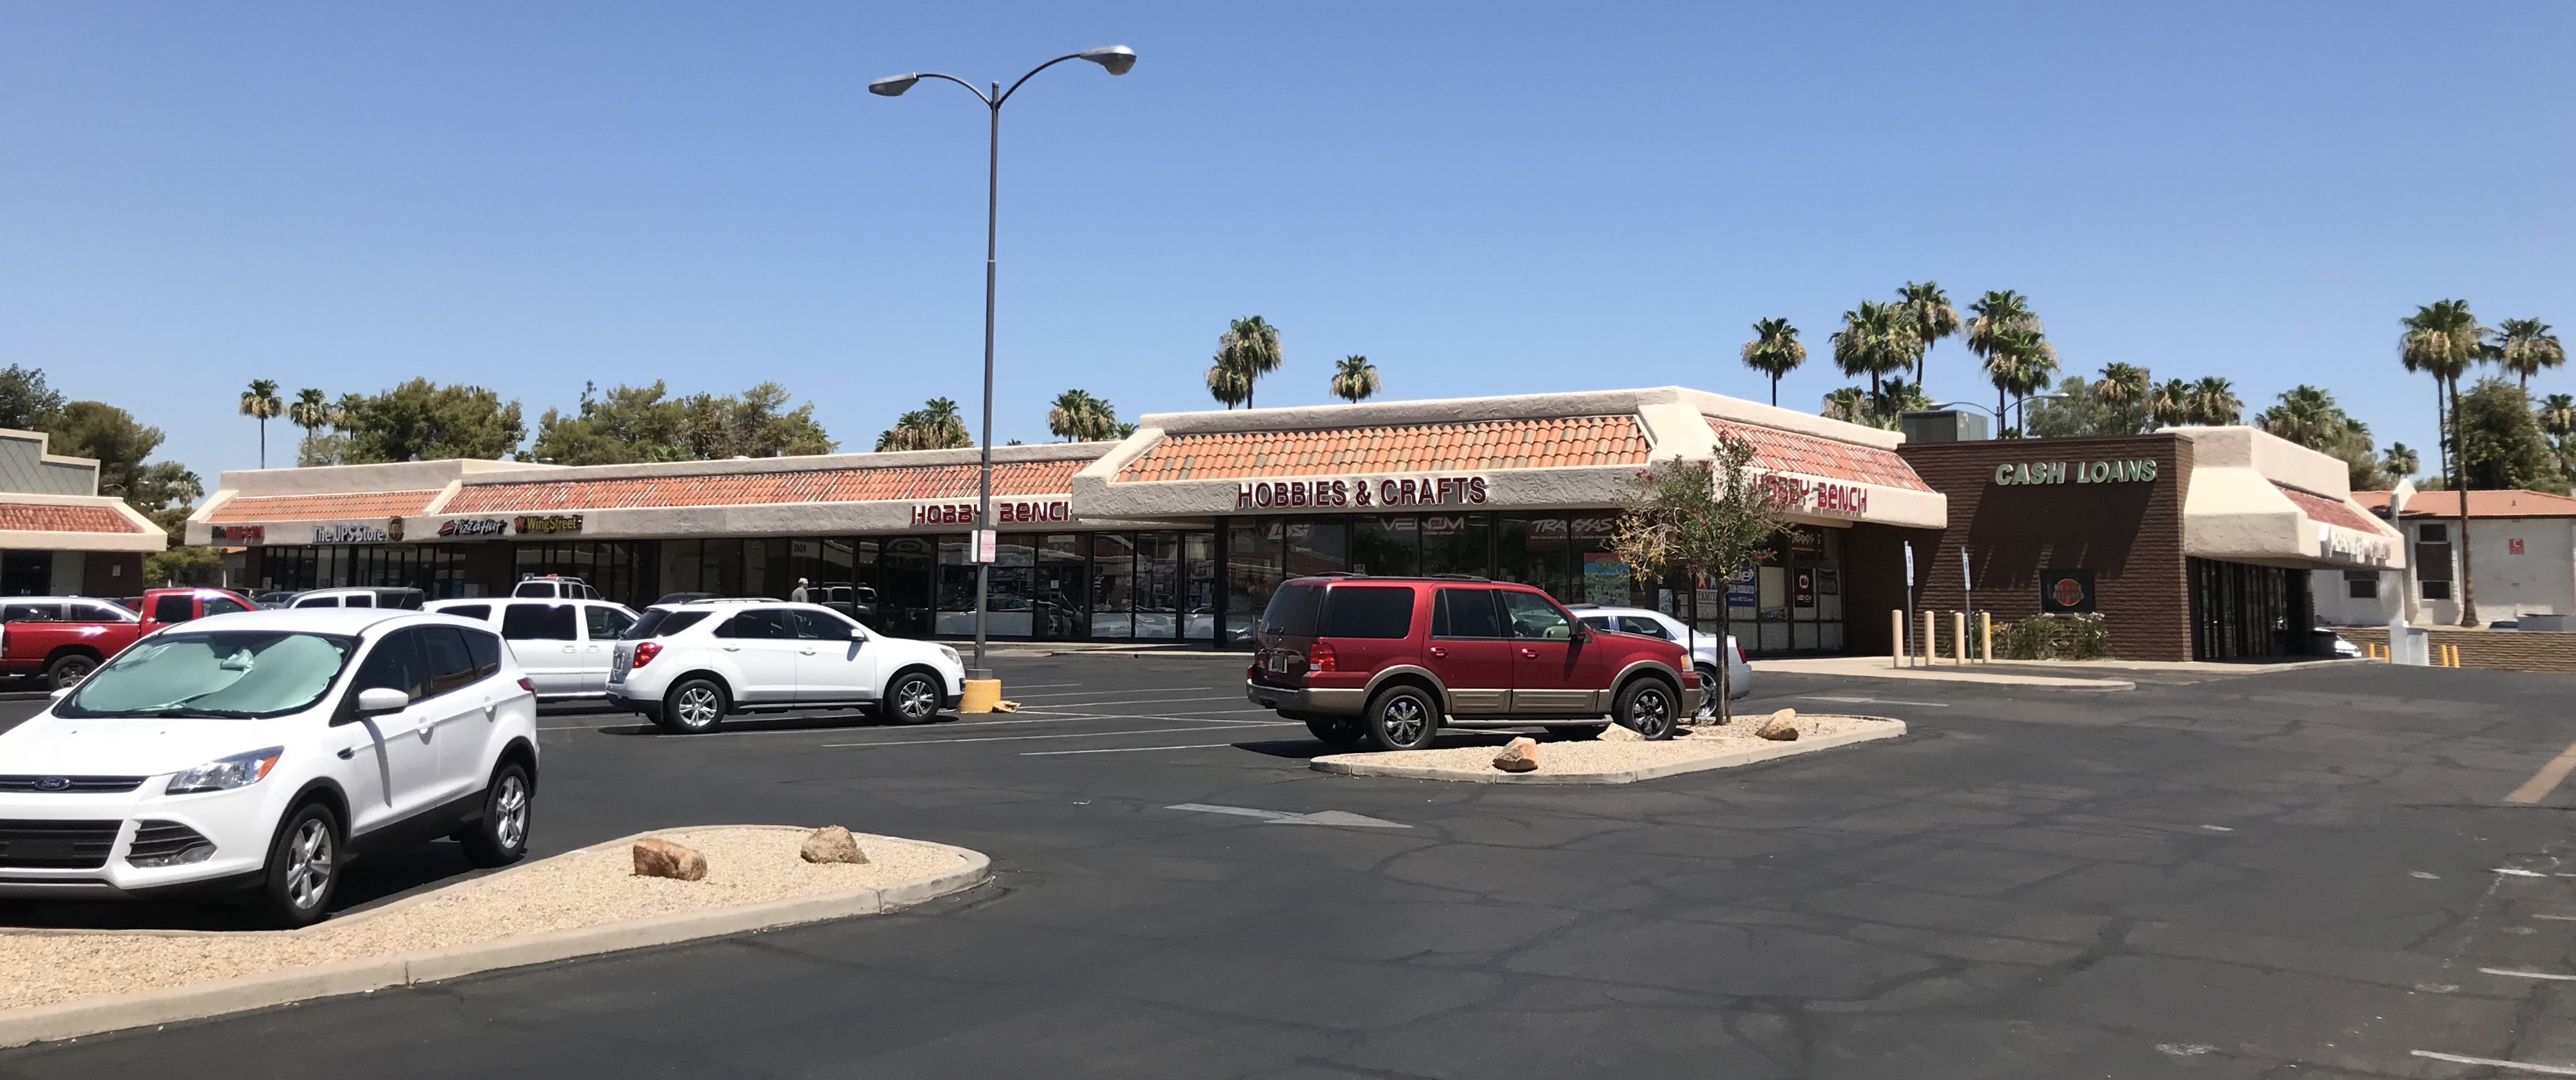 Northern 19 | Retail Space For Lease In Phoenix AZ | Vestis Group